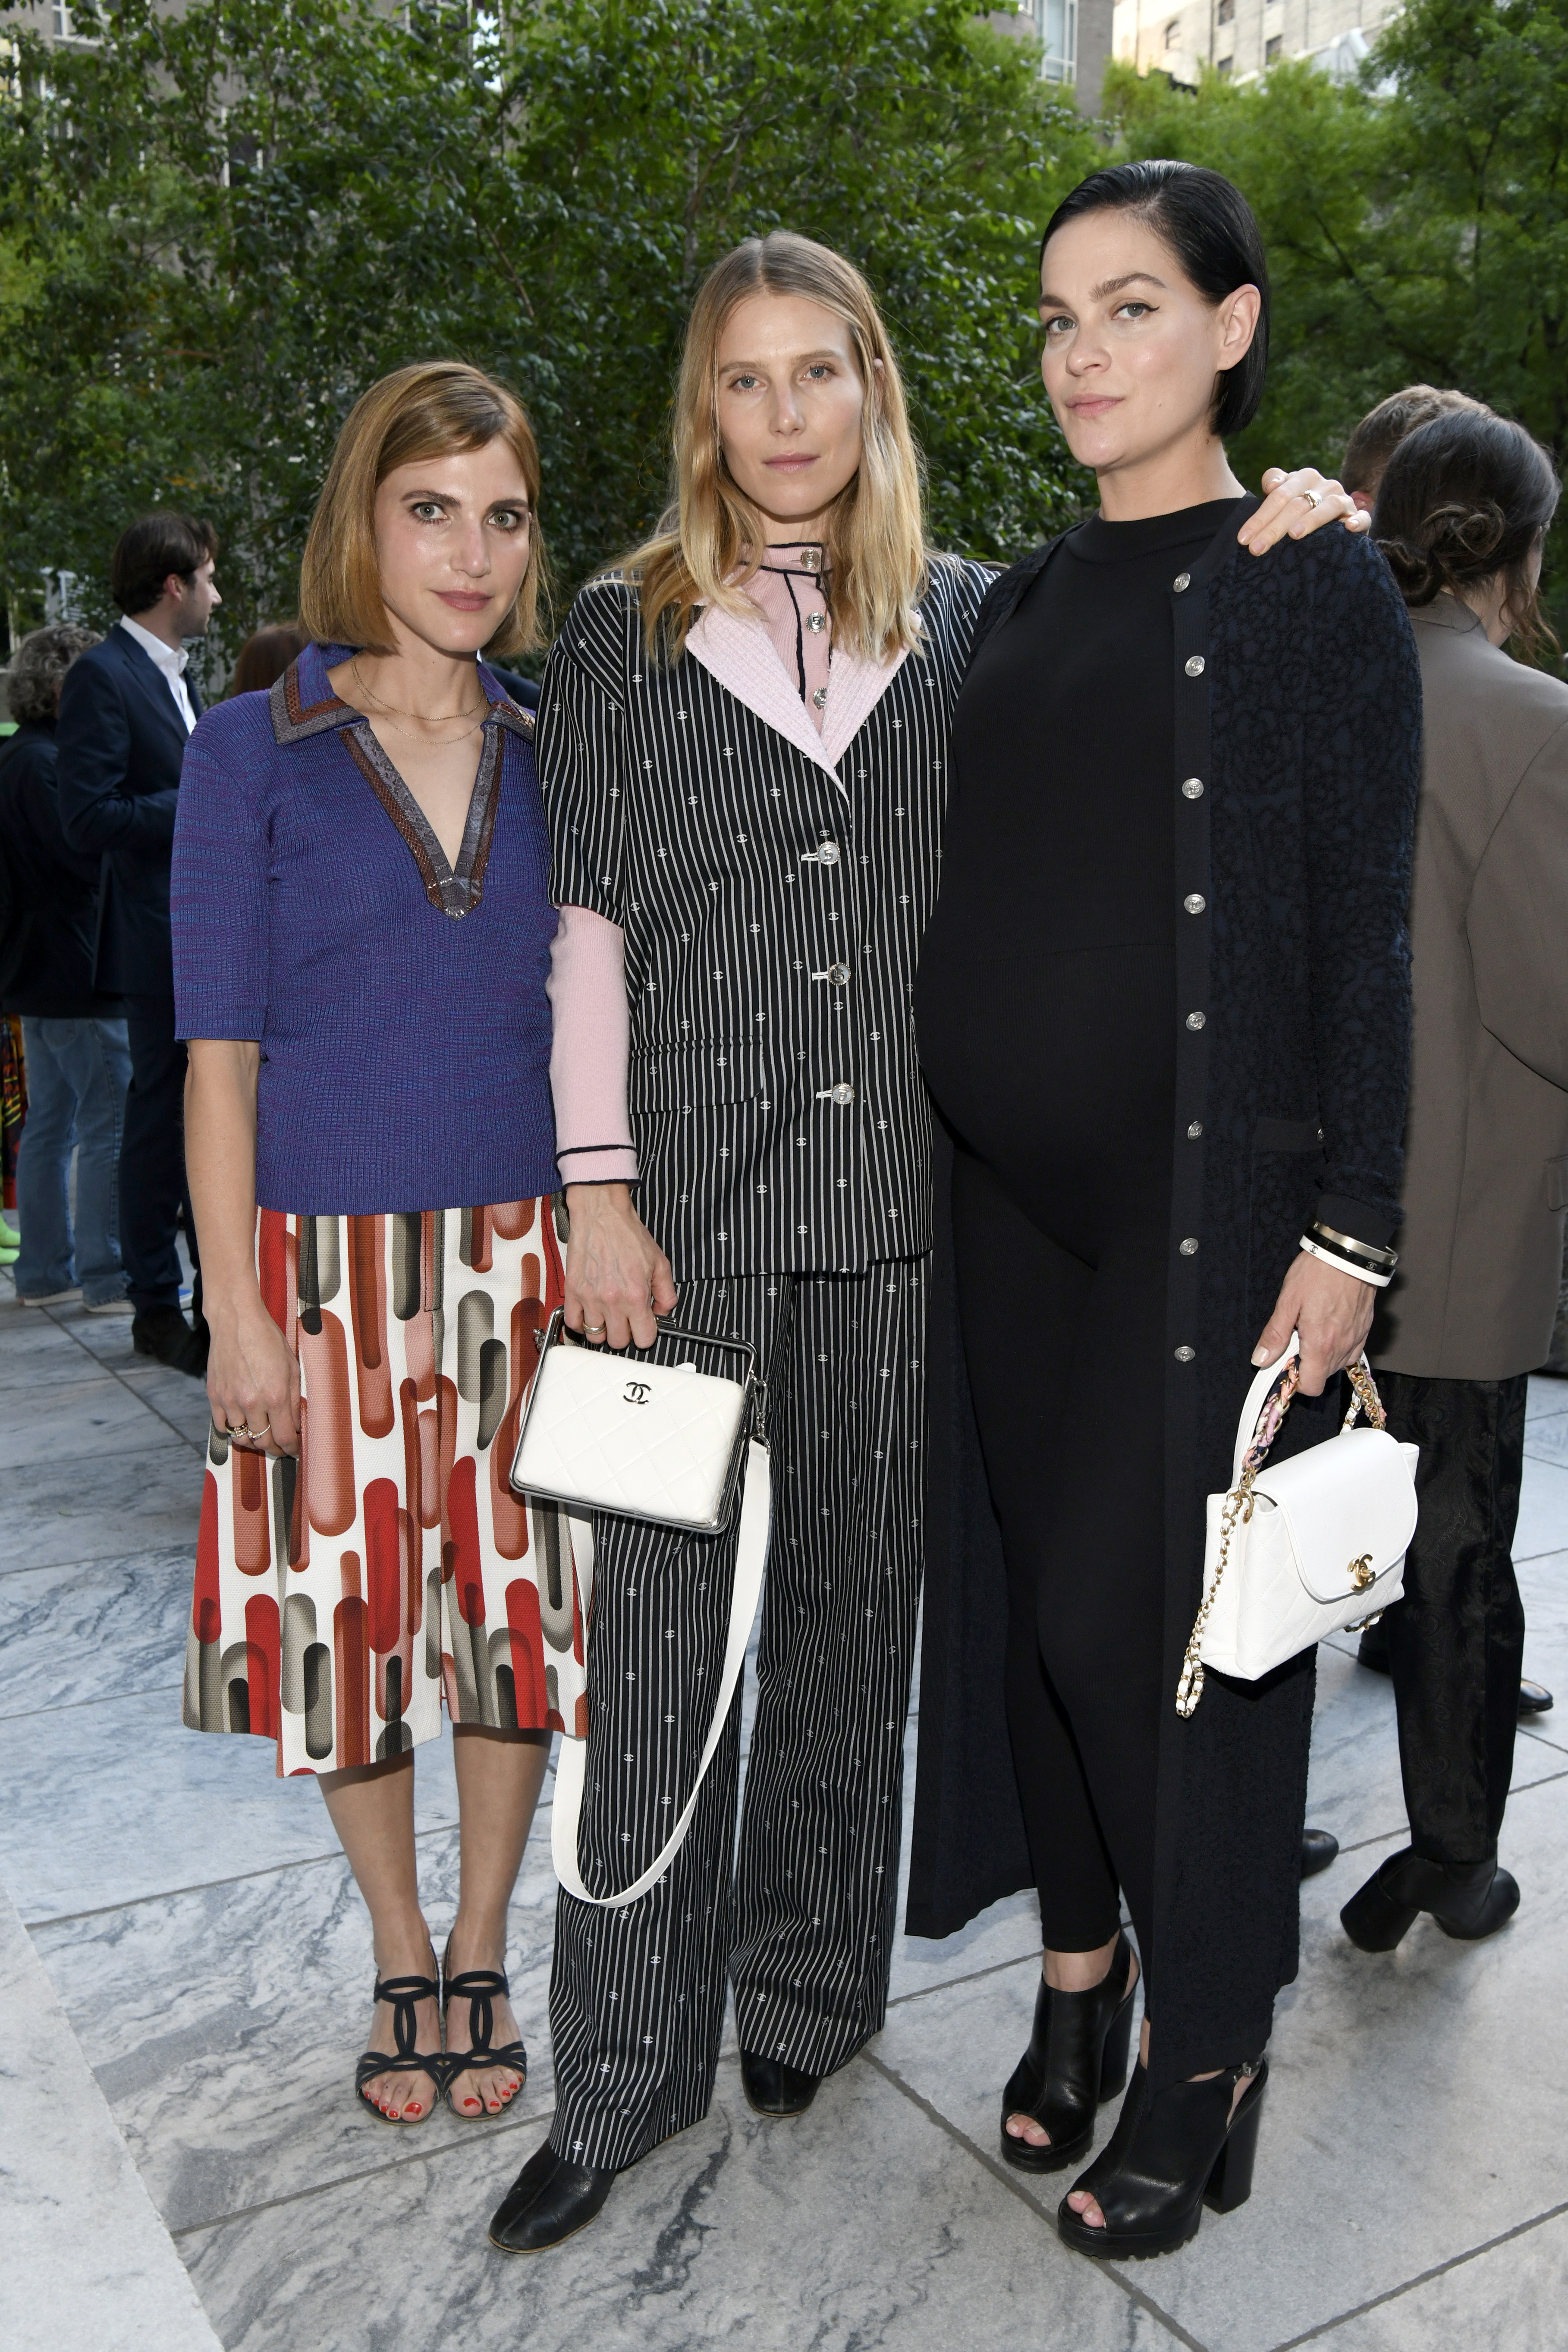 """NEW YORK, NEW YORK - JUNE 17: (L-R) Sophie Kargman, Dree Hemingway, and Leigh Lezark, wearing CHANEL, attend the CHANEL and Tribeca Festival Screening of Julian Schnabel's Remastered Film, """"Basquiat"""" on June 17, 2021 in New York City. (Photo by Clint Spaulding/WireImage)"""